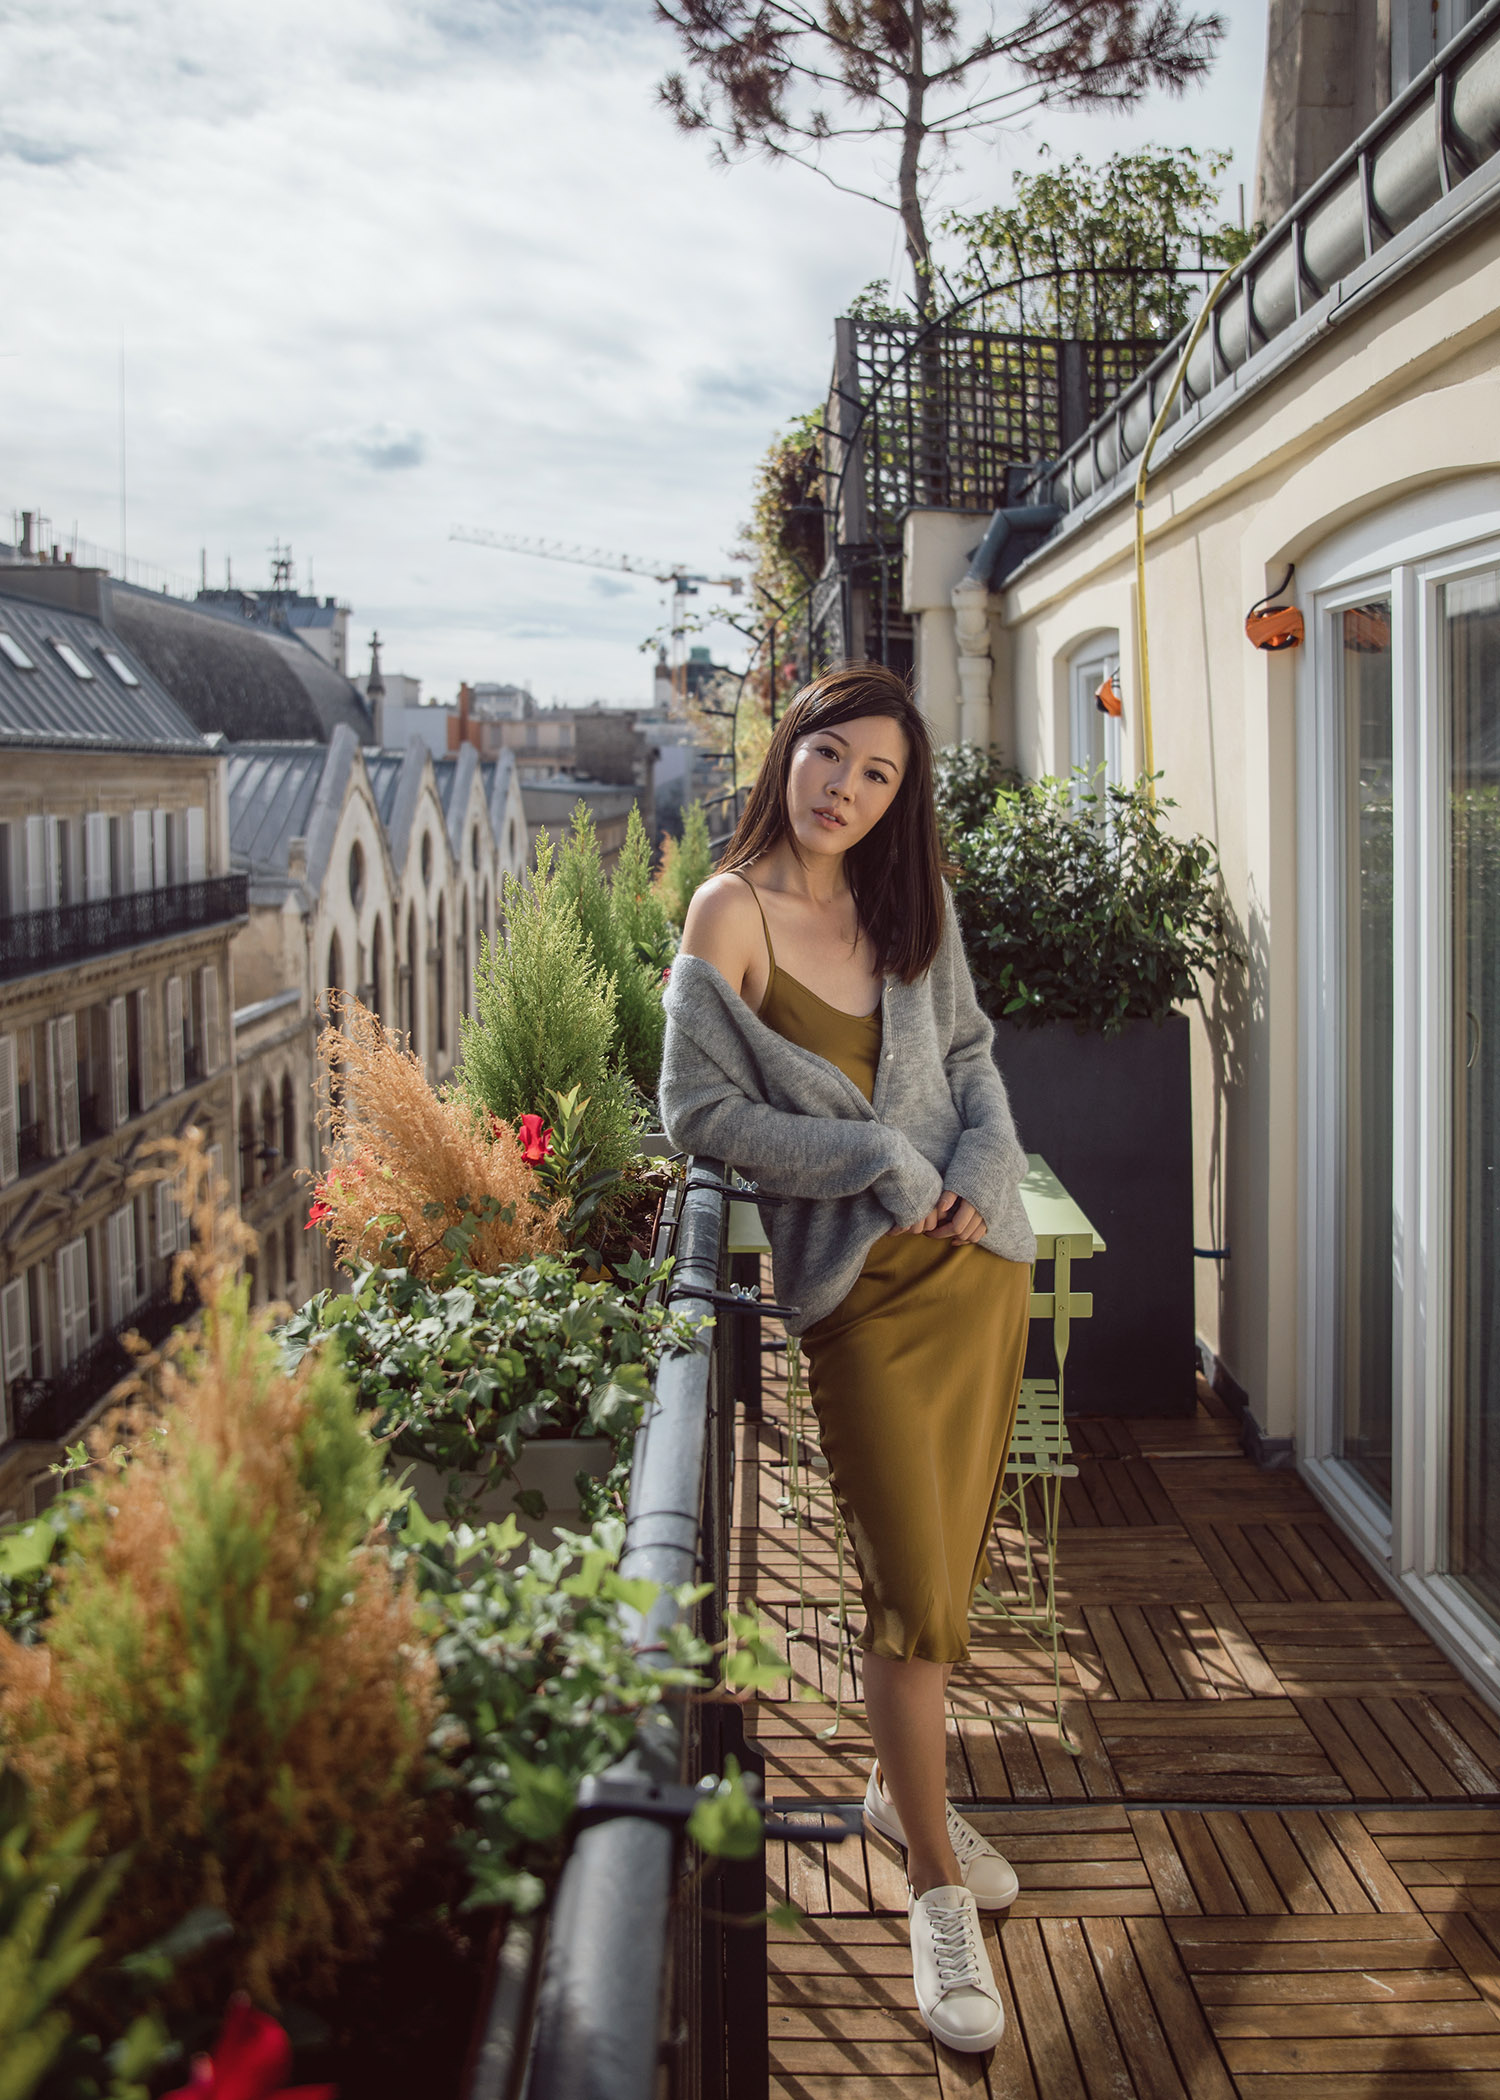 Jenny Tsang of Tsangtastic wearing knit cardigan and silk dress on balcony in Paris